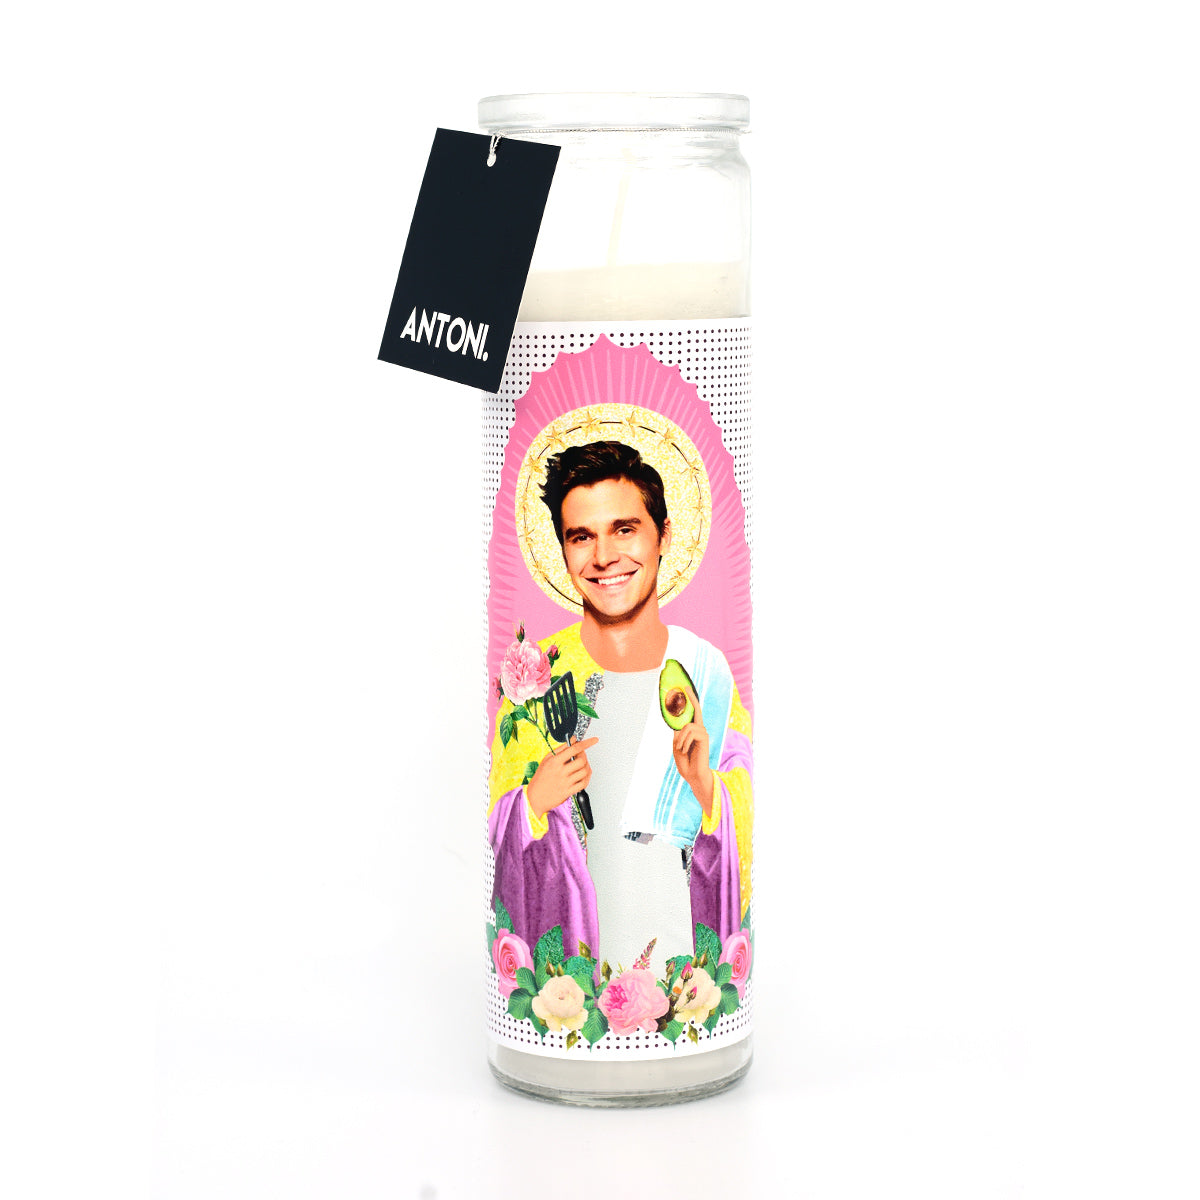 Queer Eye Candle - Antoni